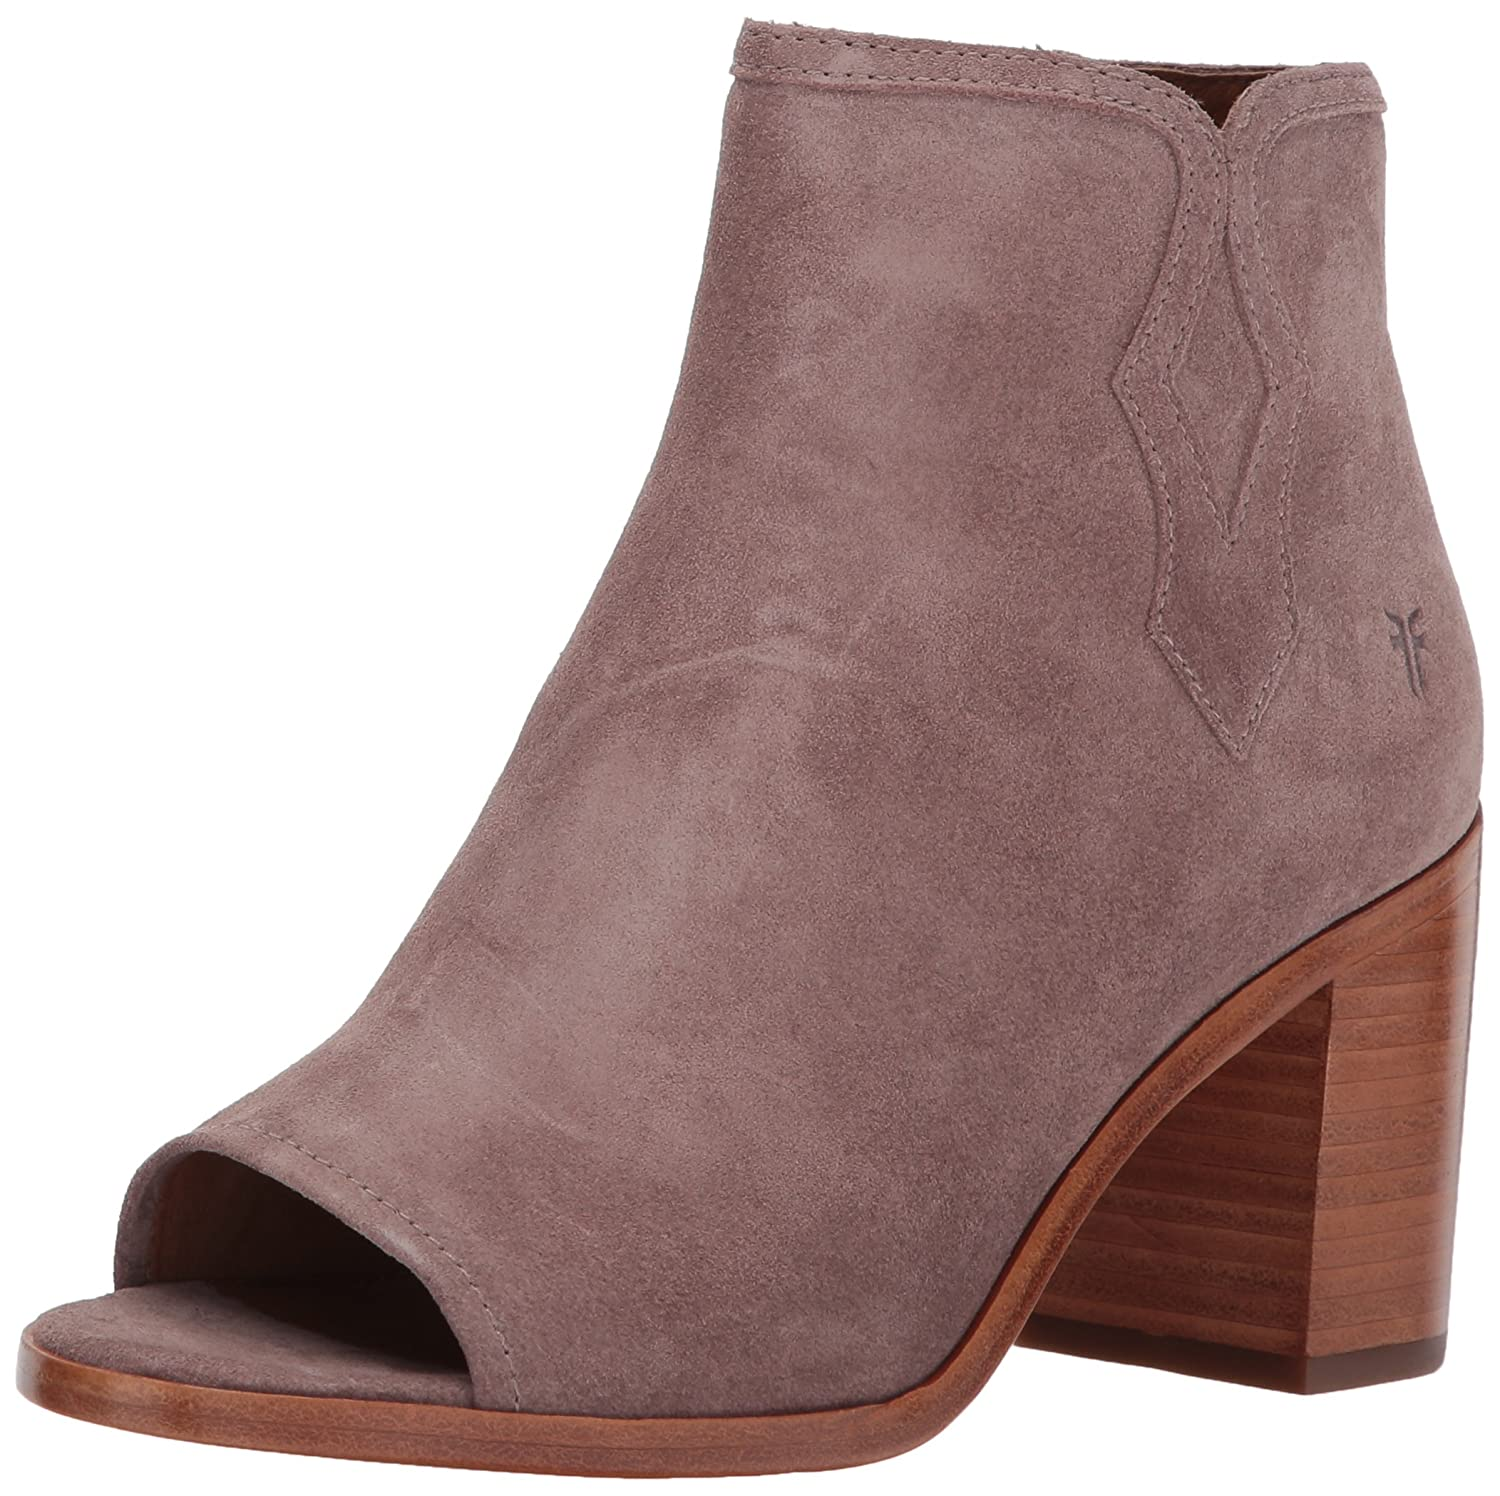 FRYE Women's Danica Peep Bootie Boot B01NGWP7B3 11 B(M) US|Dusty Rose Soft Oiled Suede